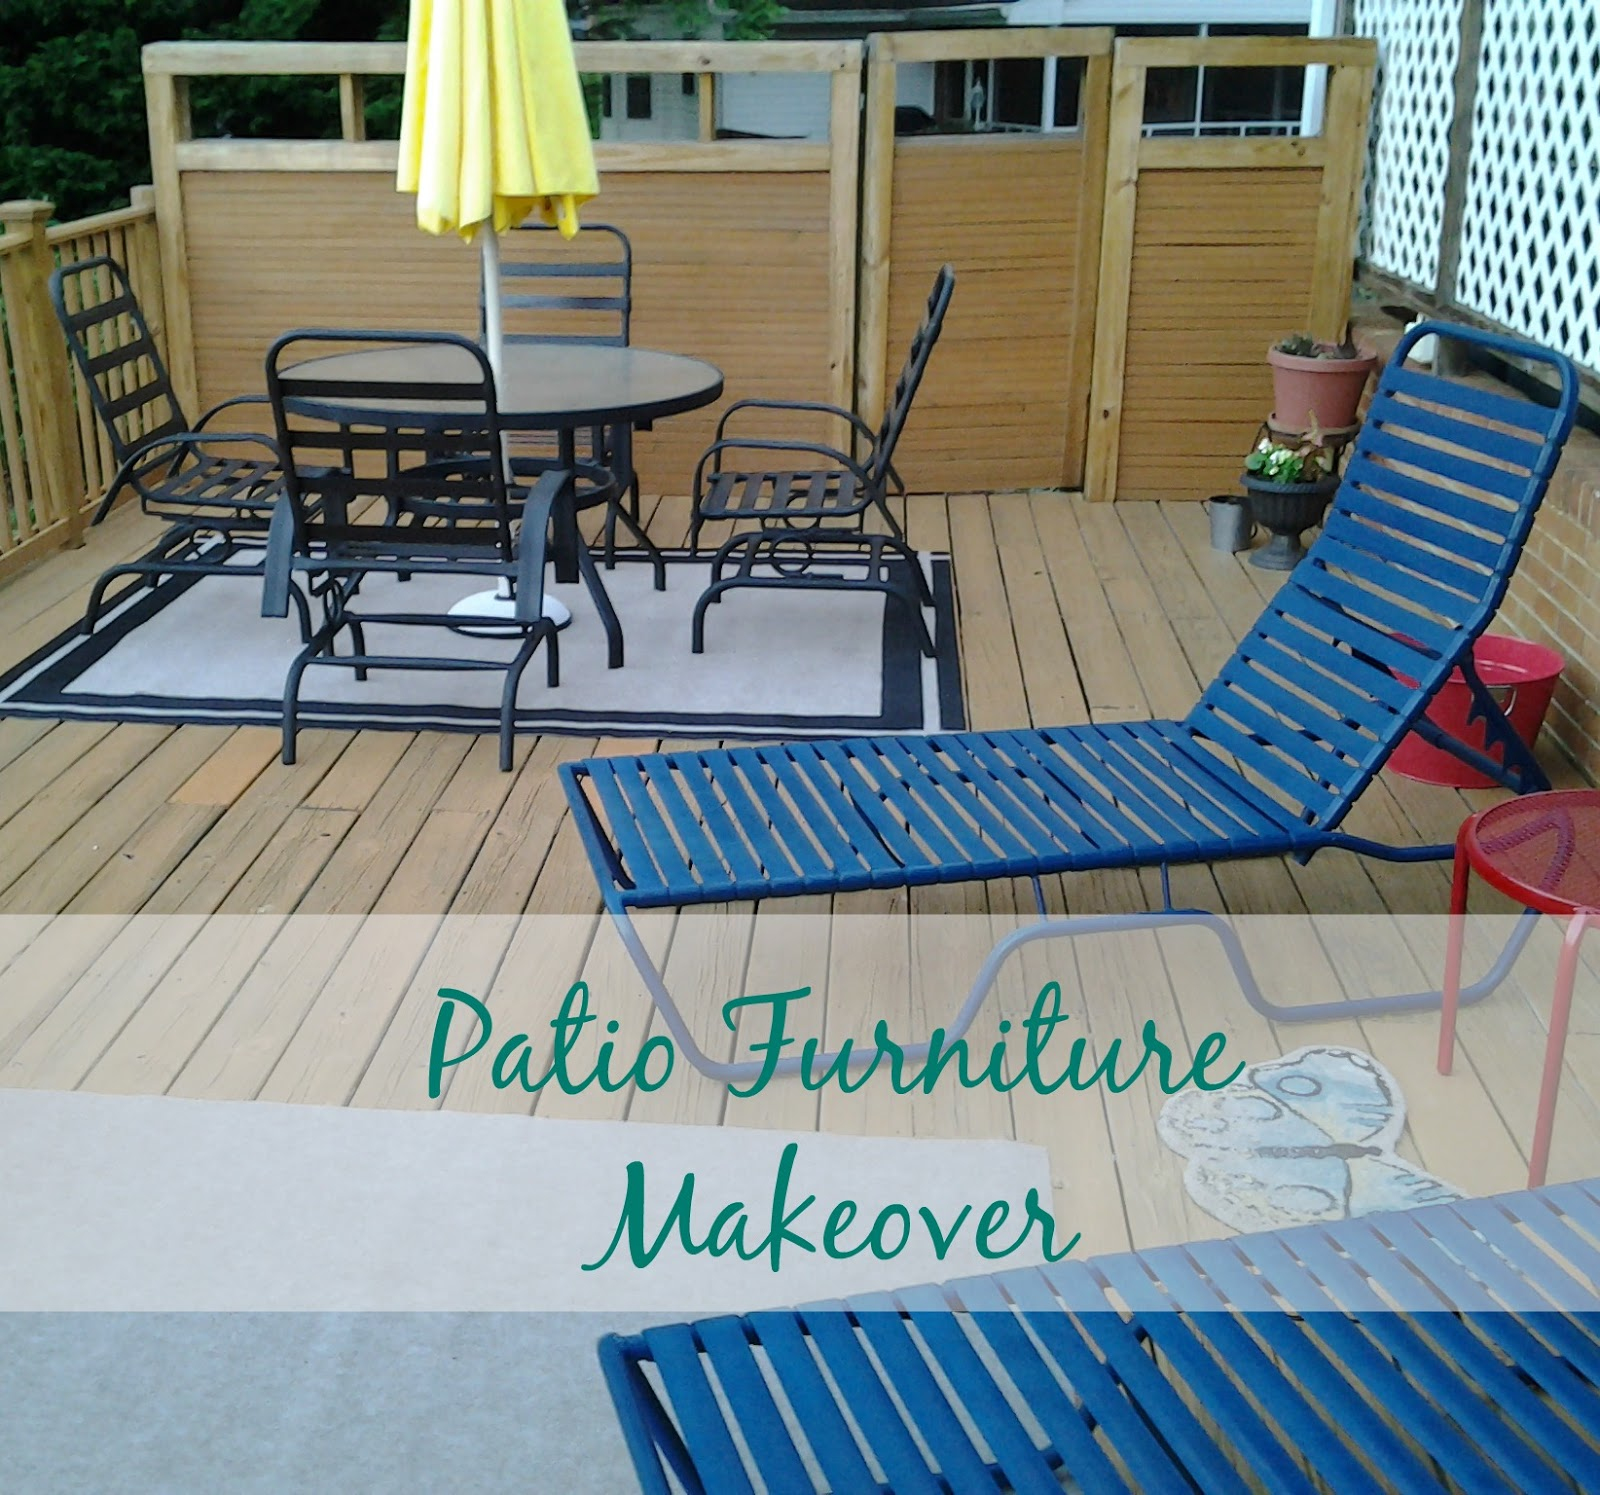 Real Girl s Realm Updating Iron Patio Furniture with Paint